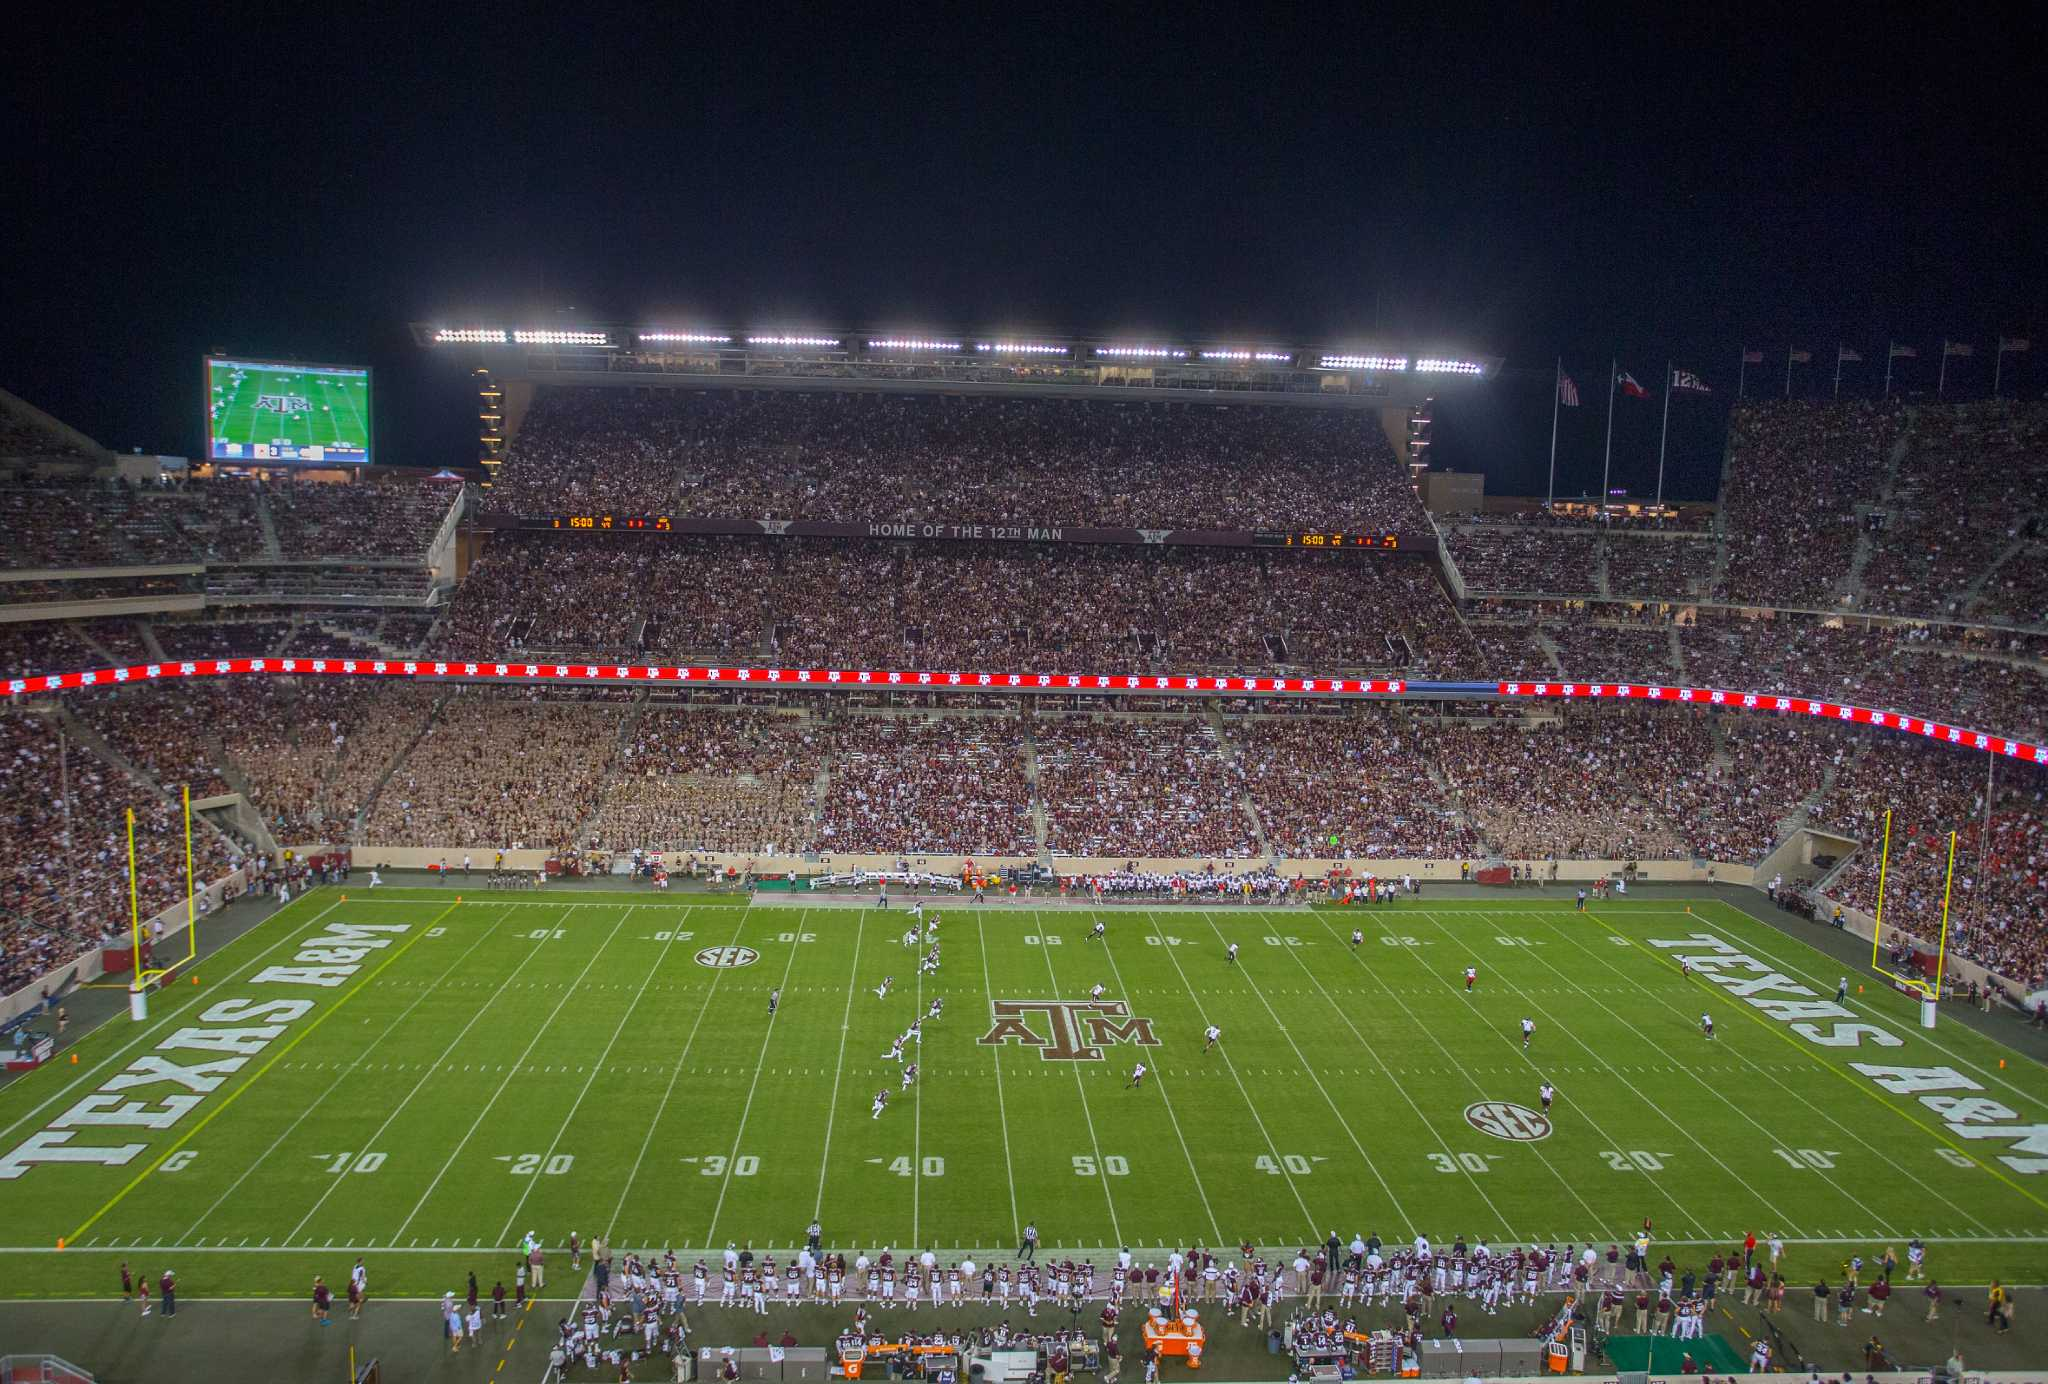 Kyle Field is viewed during an NCAA college football game between Ball 2048x1384